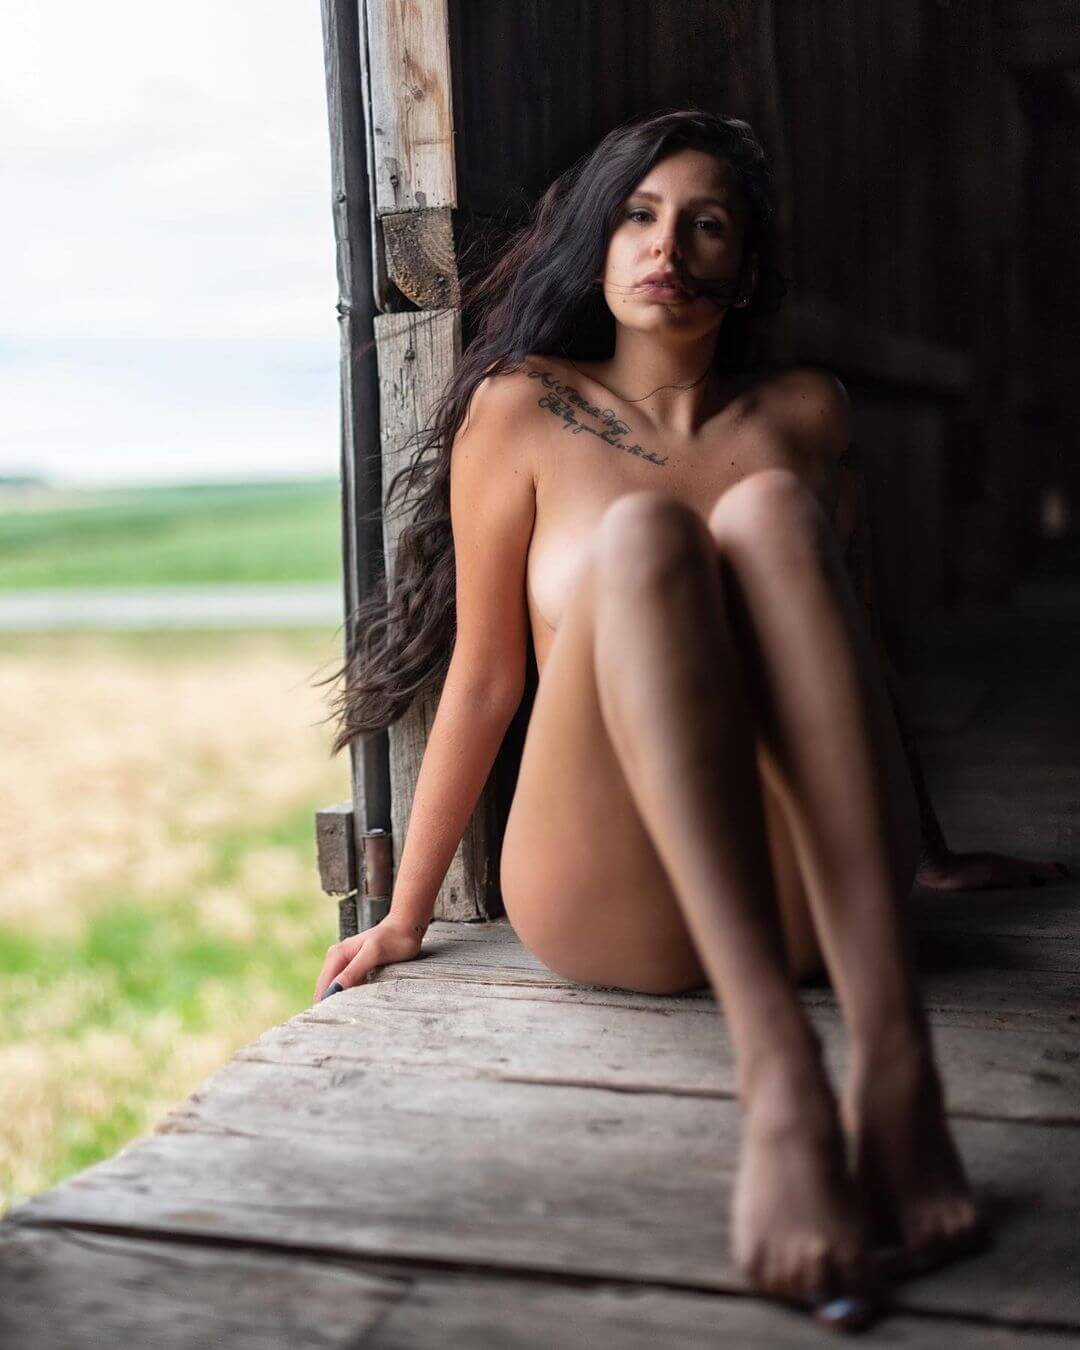 Beautiful Canadian model Msk Black @m.s.k.black in the nude showing her fit body and sexy bare legs for an outdoor boudoir photo session on a freight train